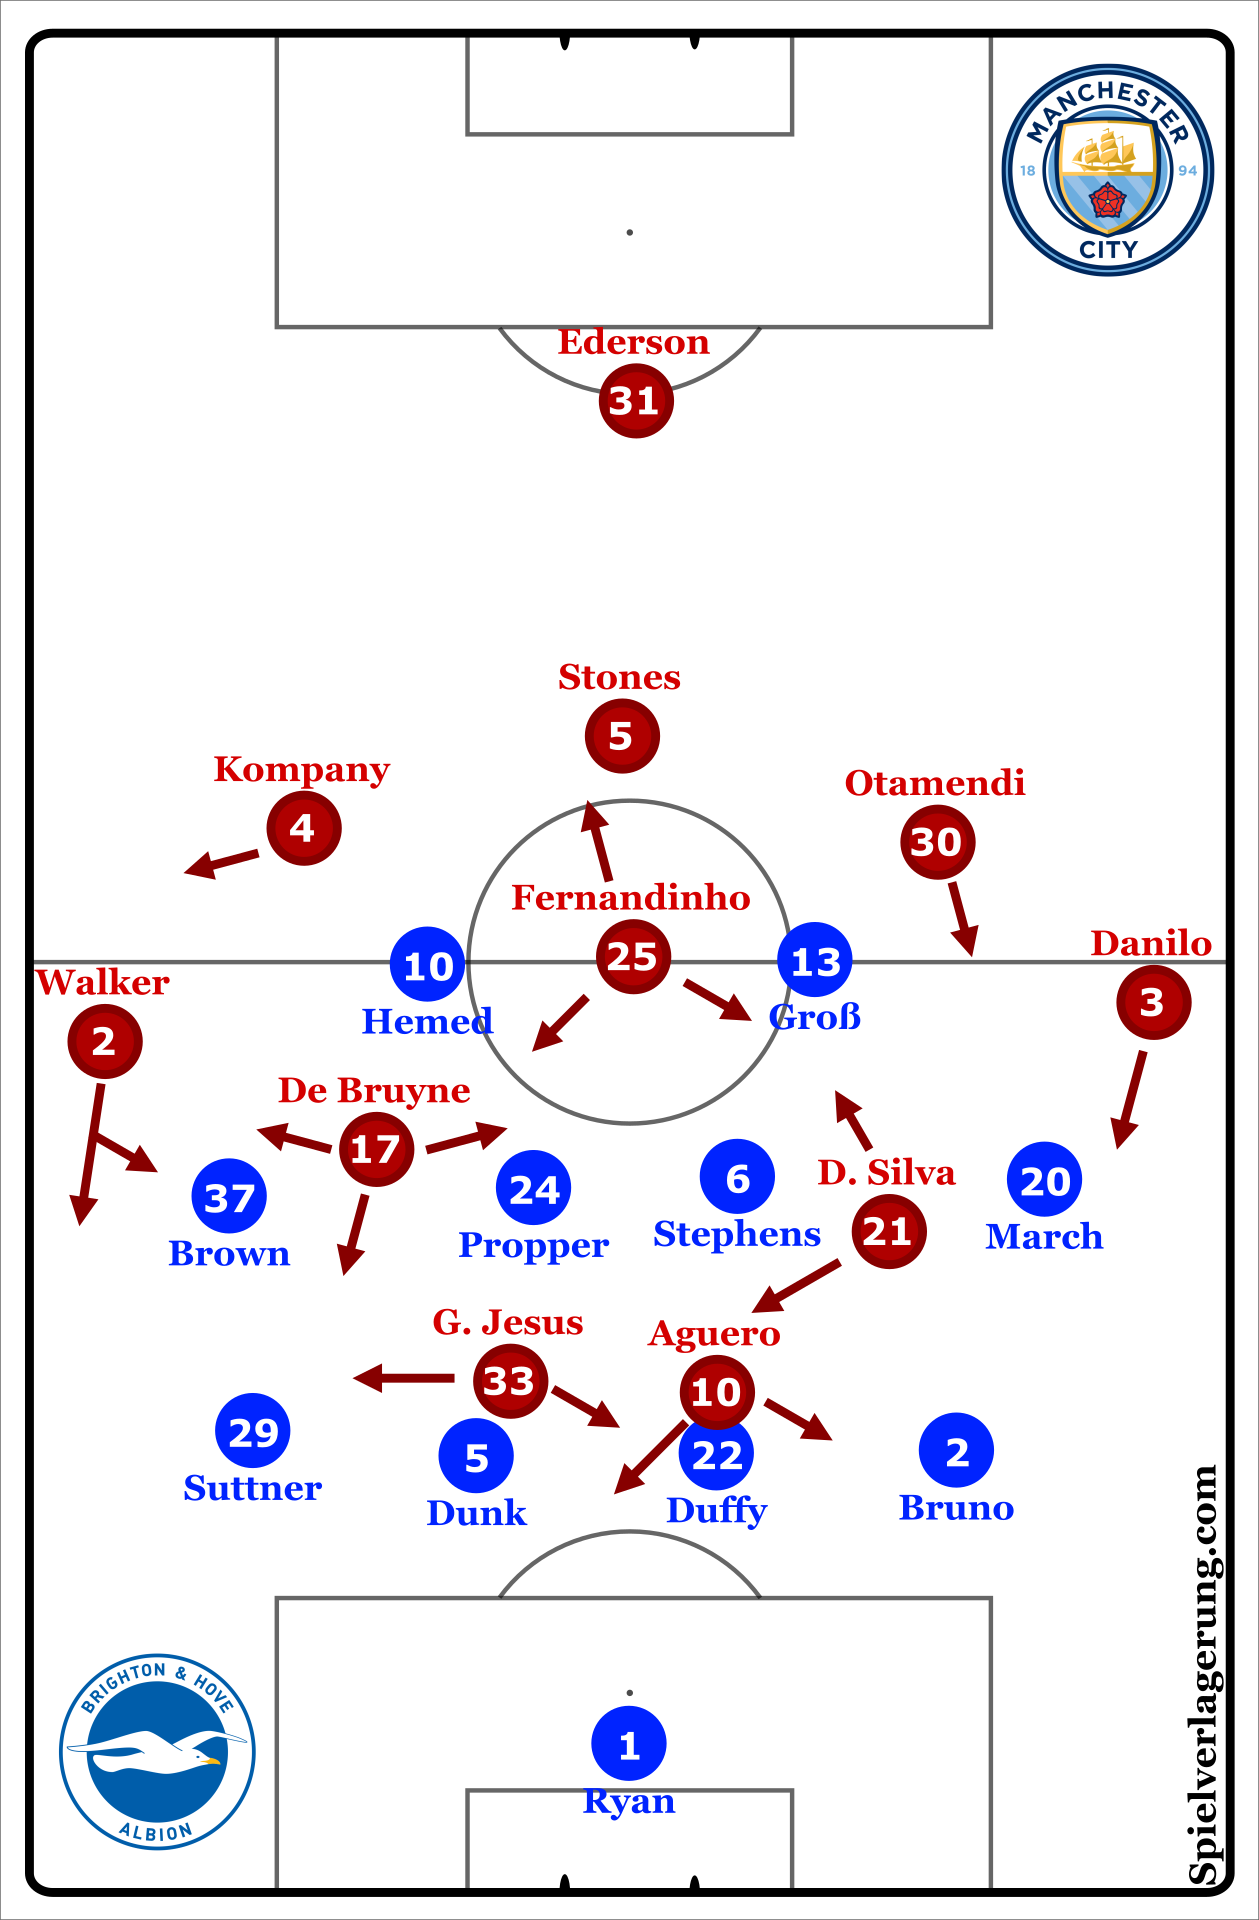 Starting XI and Formations for both clubs